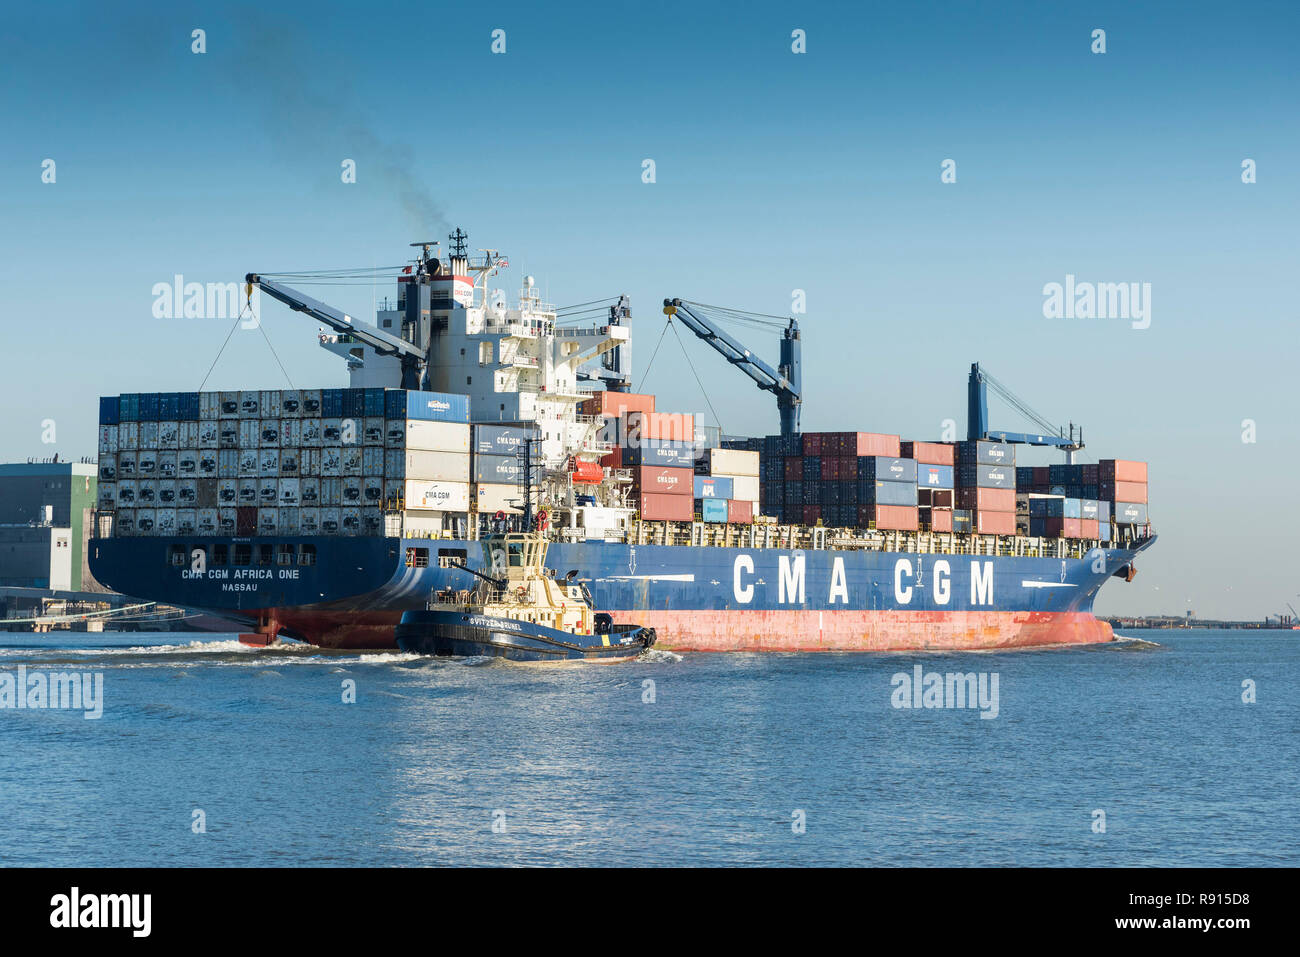 Shipping on the Thames.  The CMA CGM Africa One container ship accompanied by the tug Svitzer Brunel steaming downriver on the River Thames. Stock Photo